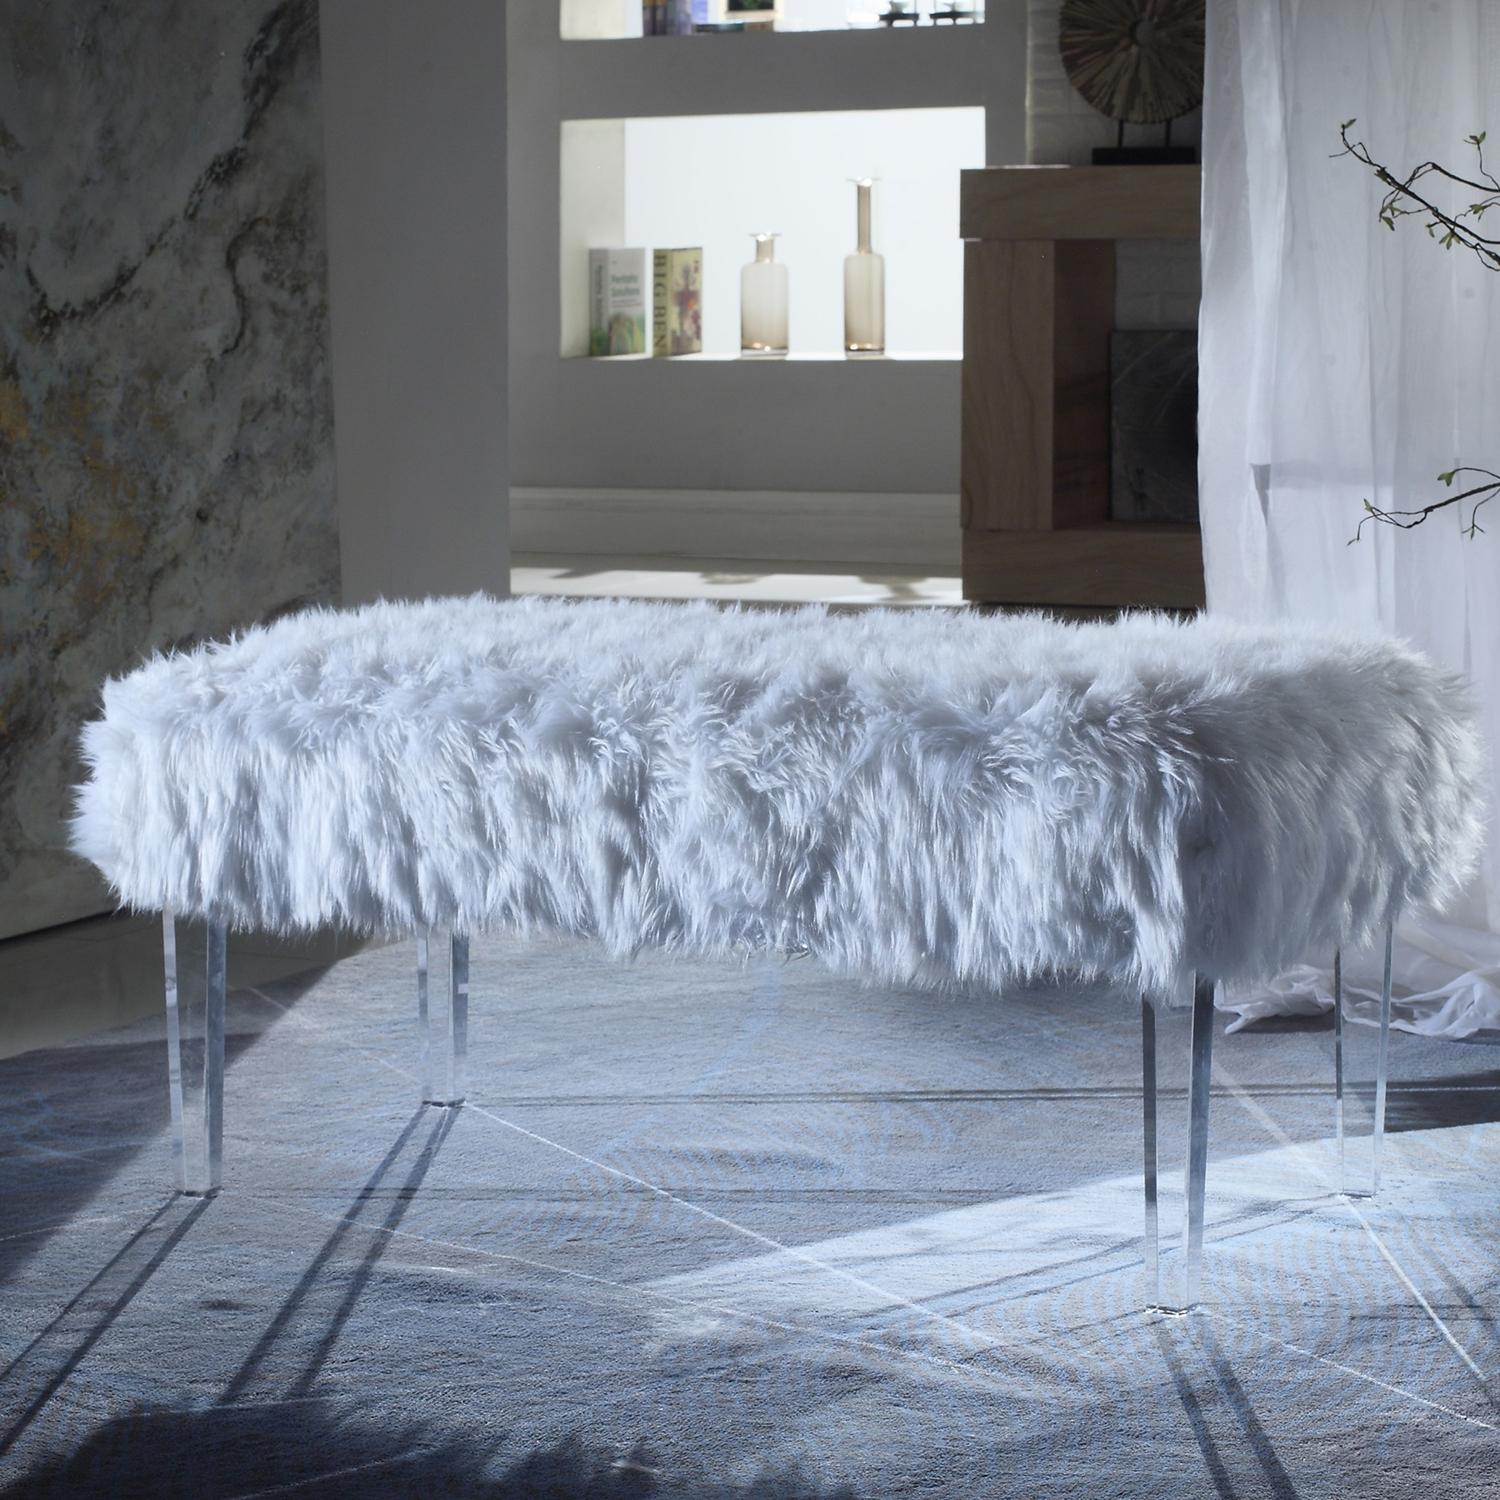 Magnificent Trento Bench In White Faux Fur On Acrylic Legs By Chic Home Uwap Interior Chair Design Uwaporg